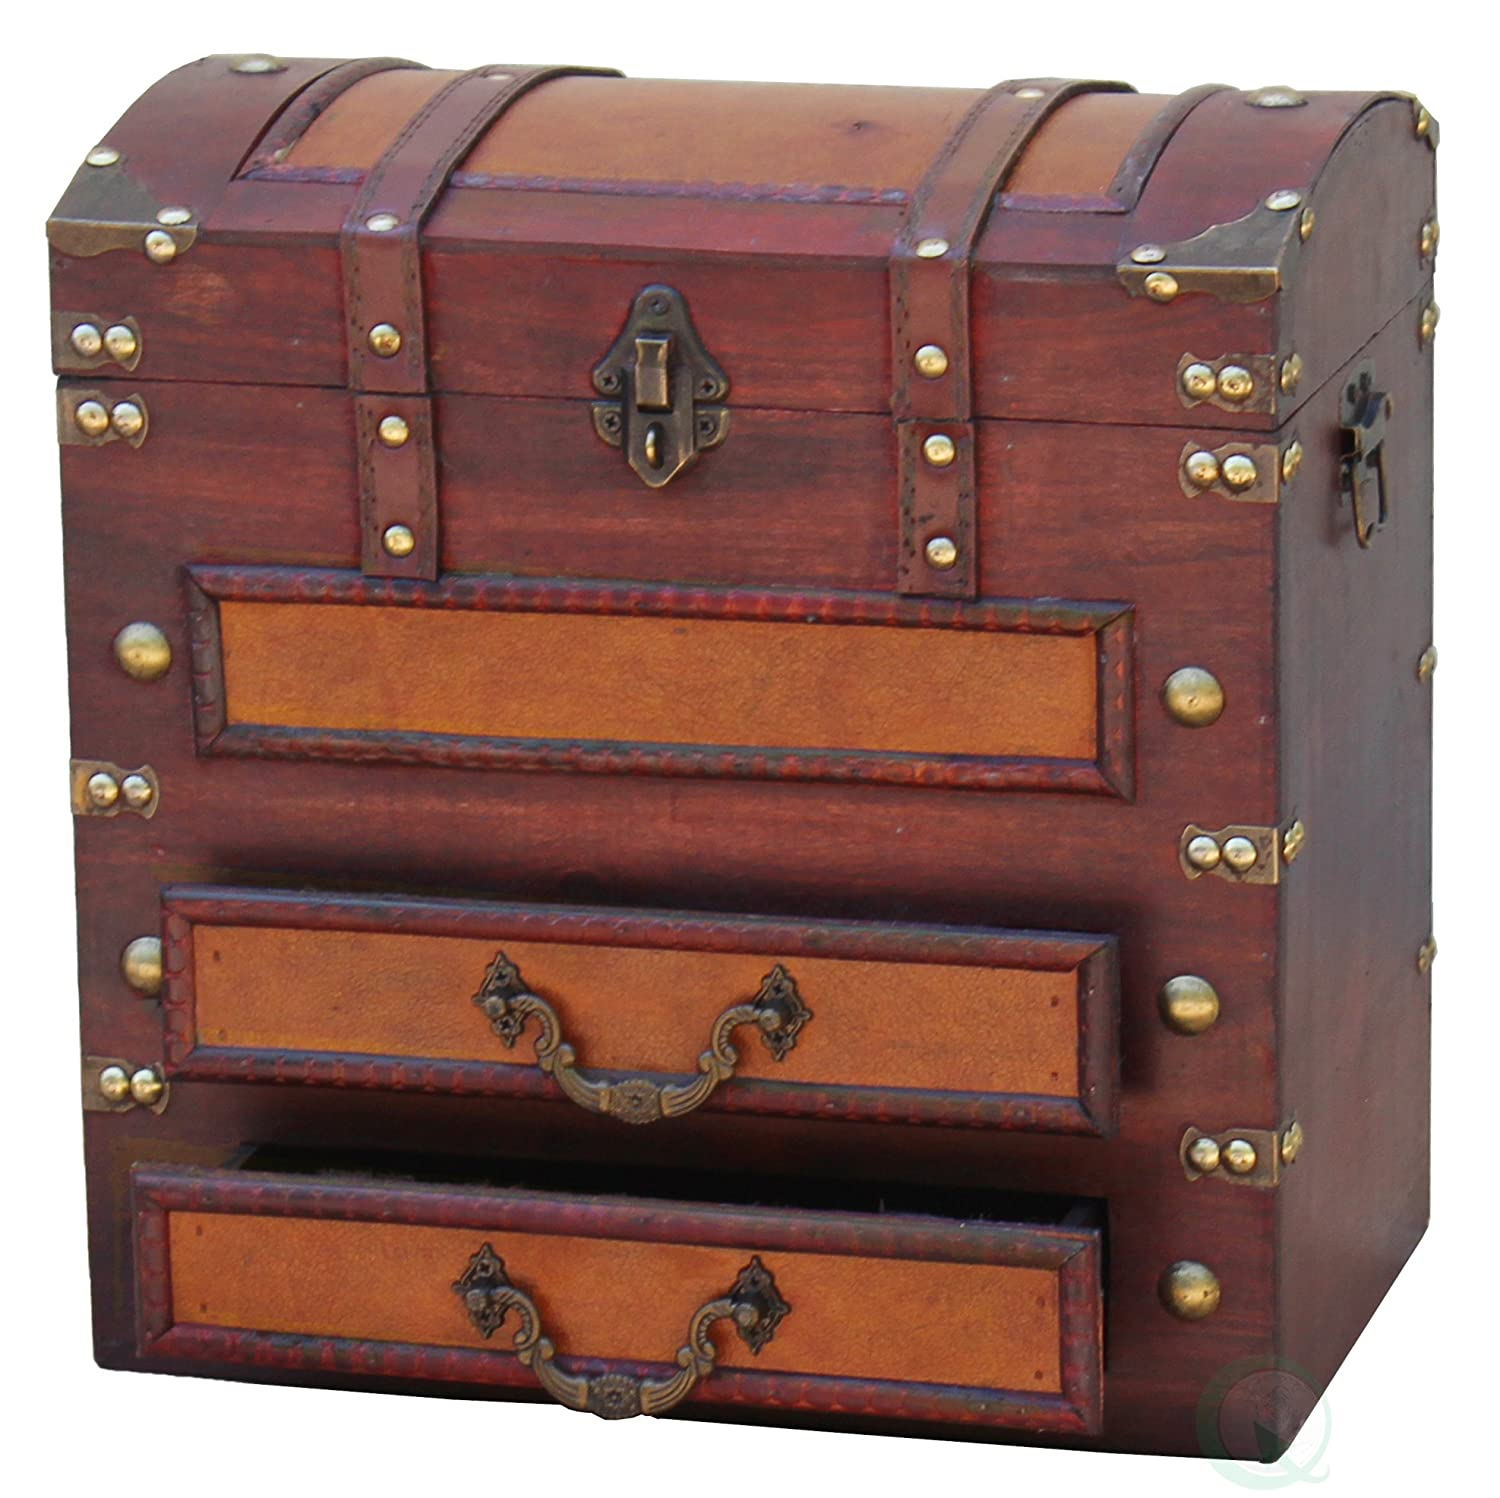 Suitcase With Drawers Amazoncom Vintiquewisetm Decorative Wooden Storage Chest With